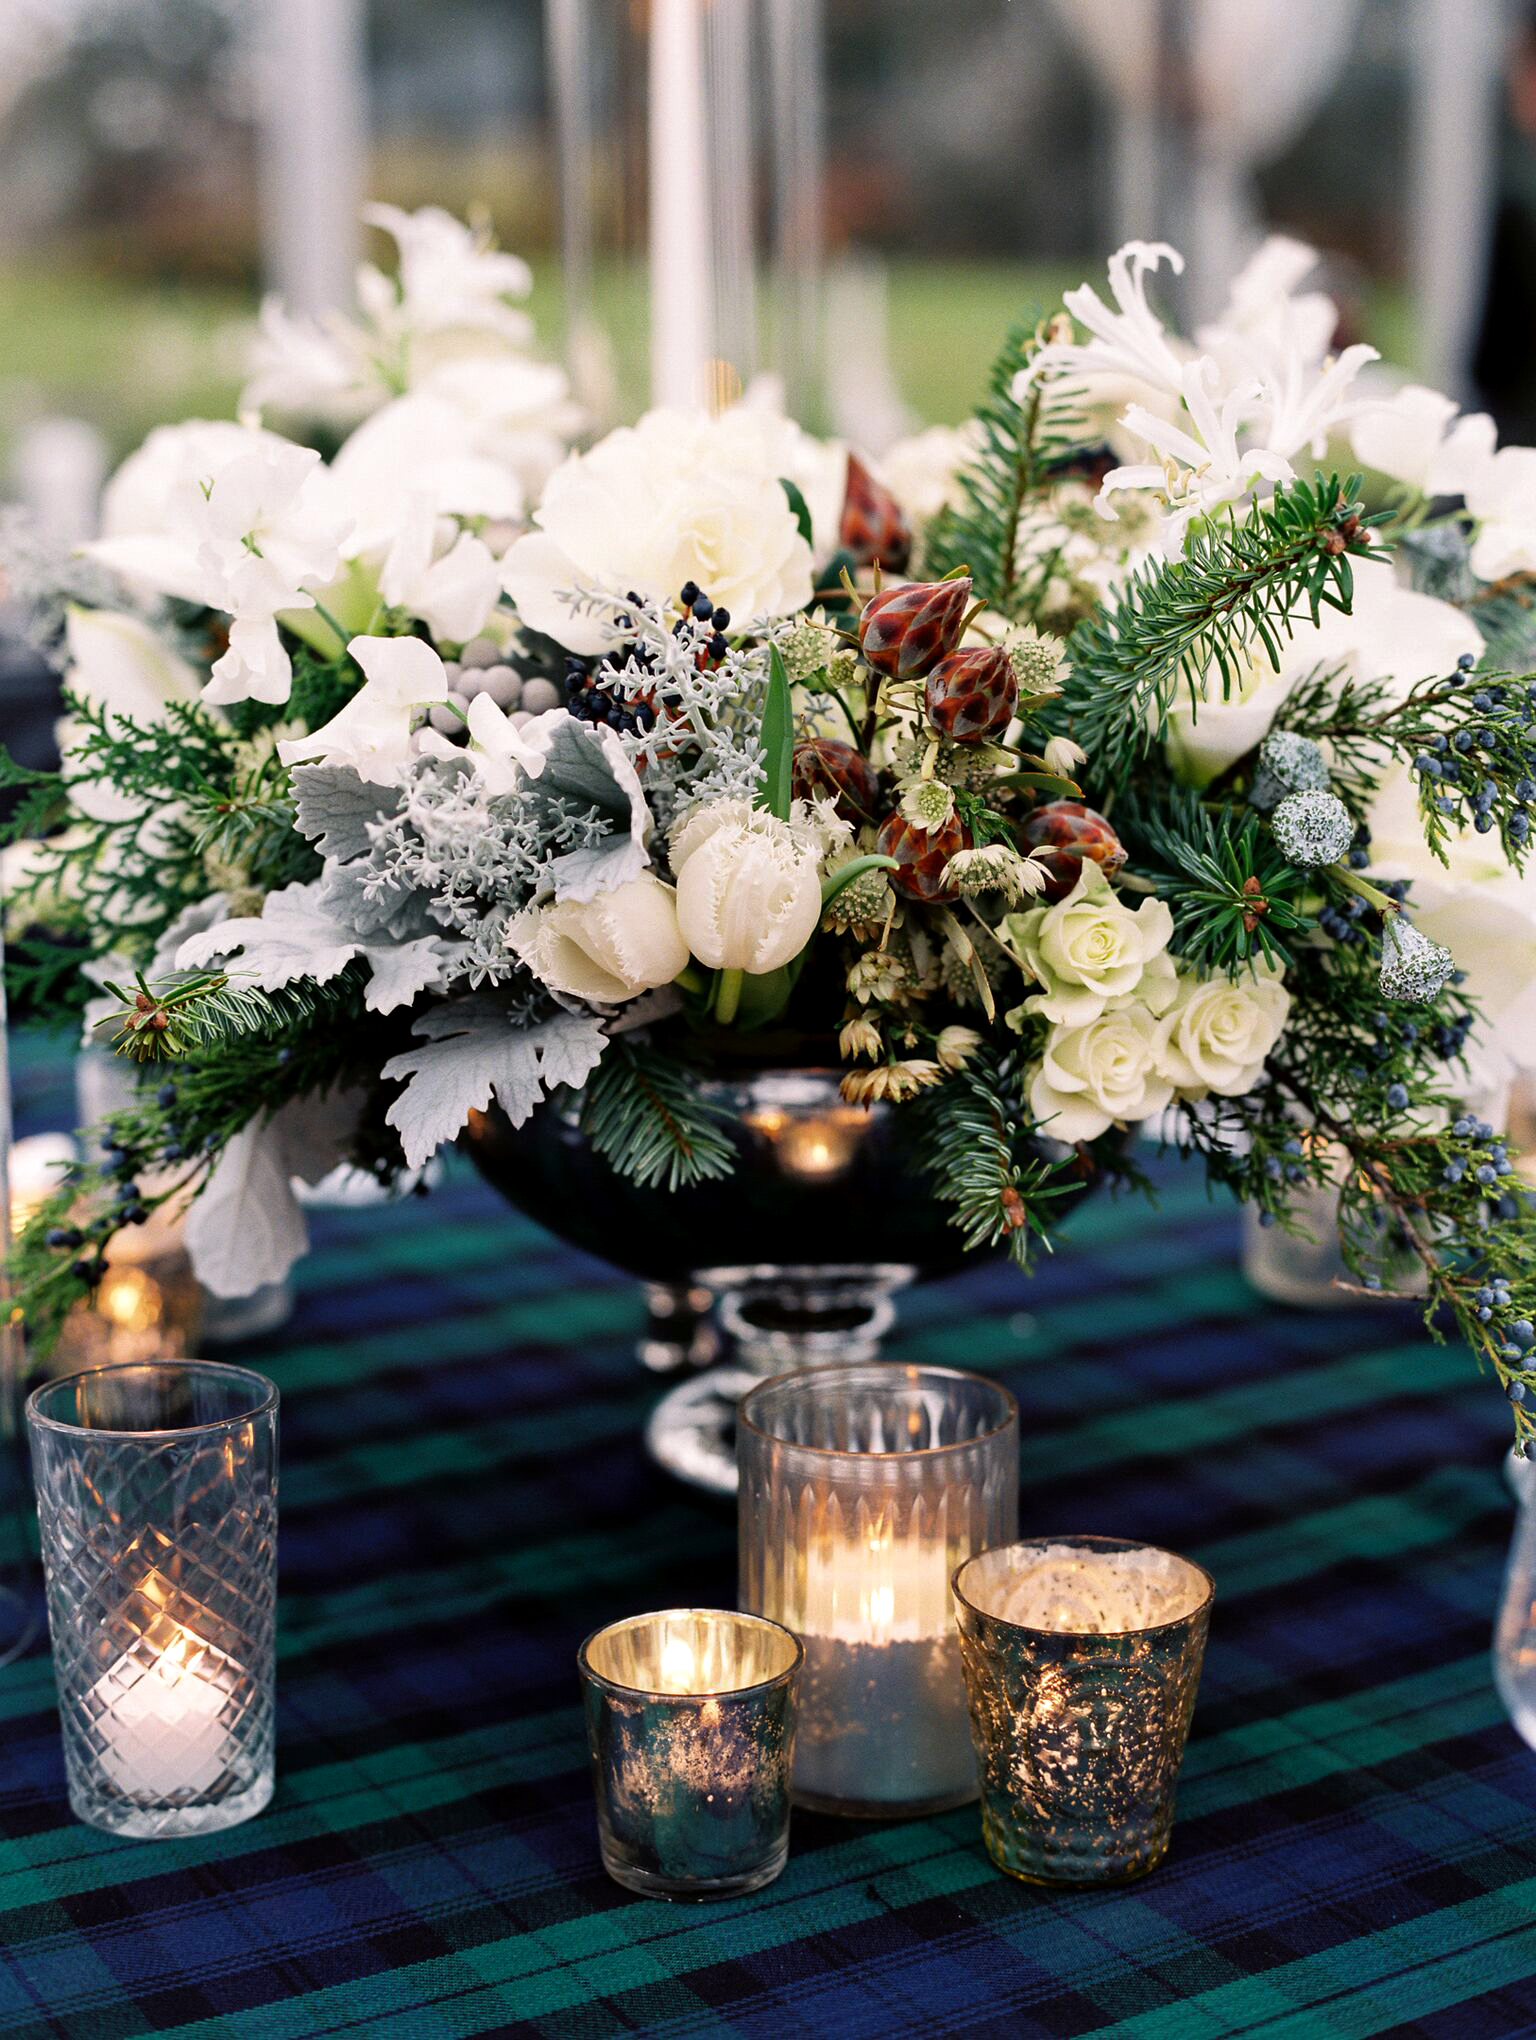 Winter Wedding Centerpieces That Nod To The Season Martha